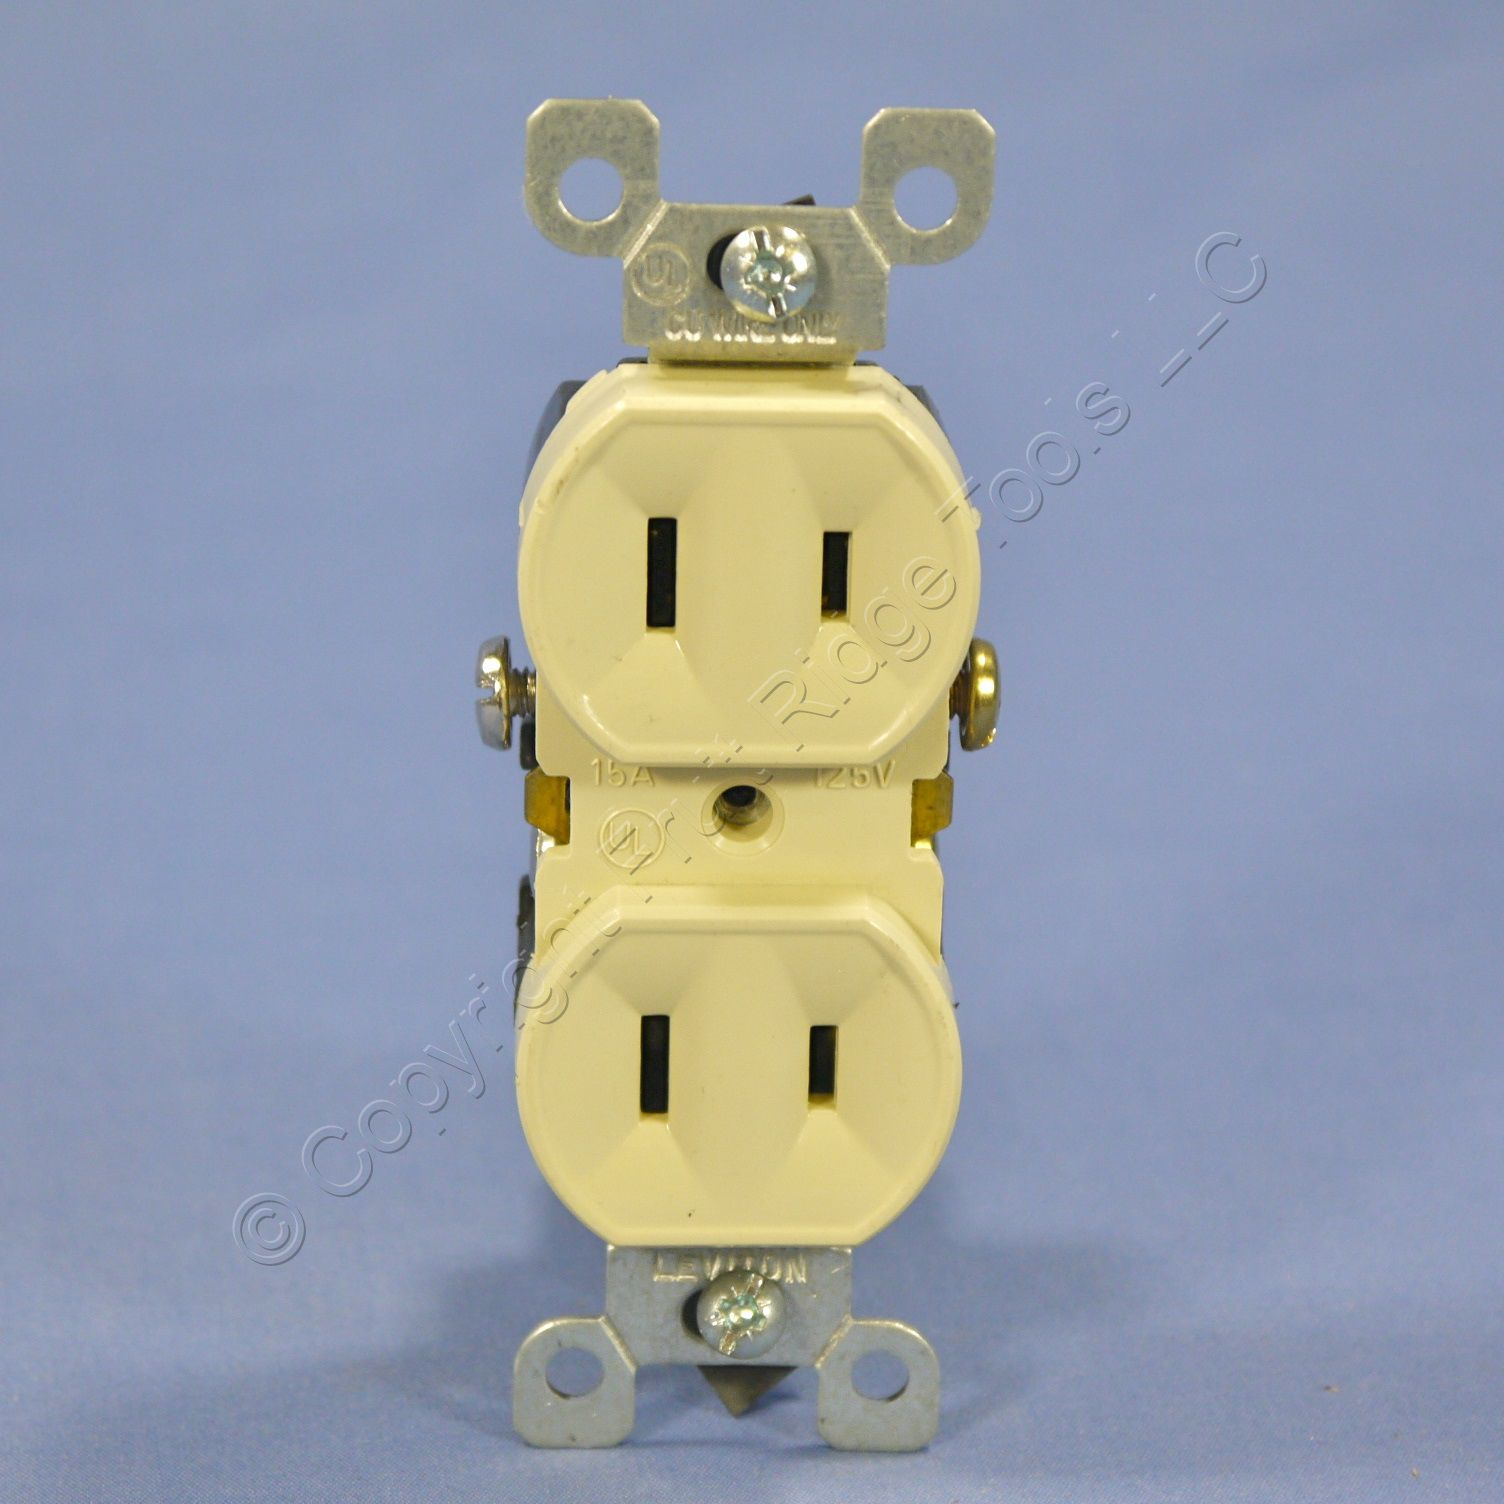 Leviton Ivory 1-15 Duplex Outlet Receptacle Non-Grounded NEMA 1-15R 15A 125V 223-I